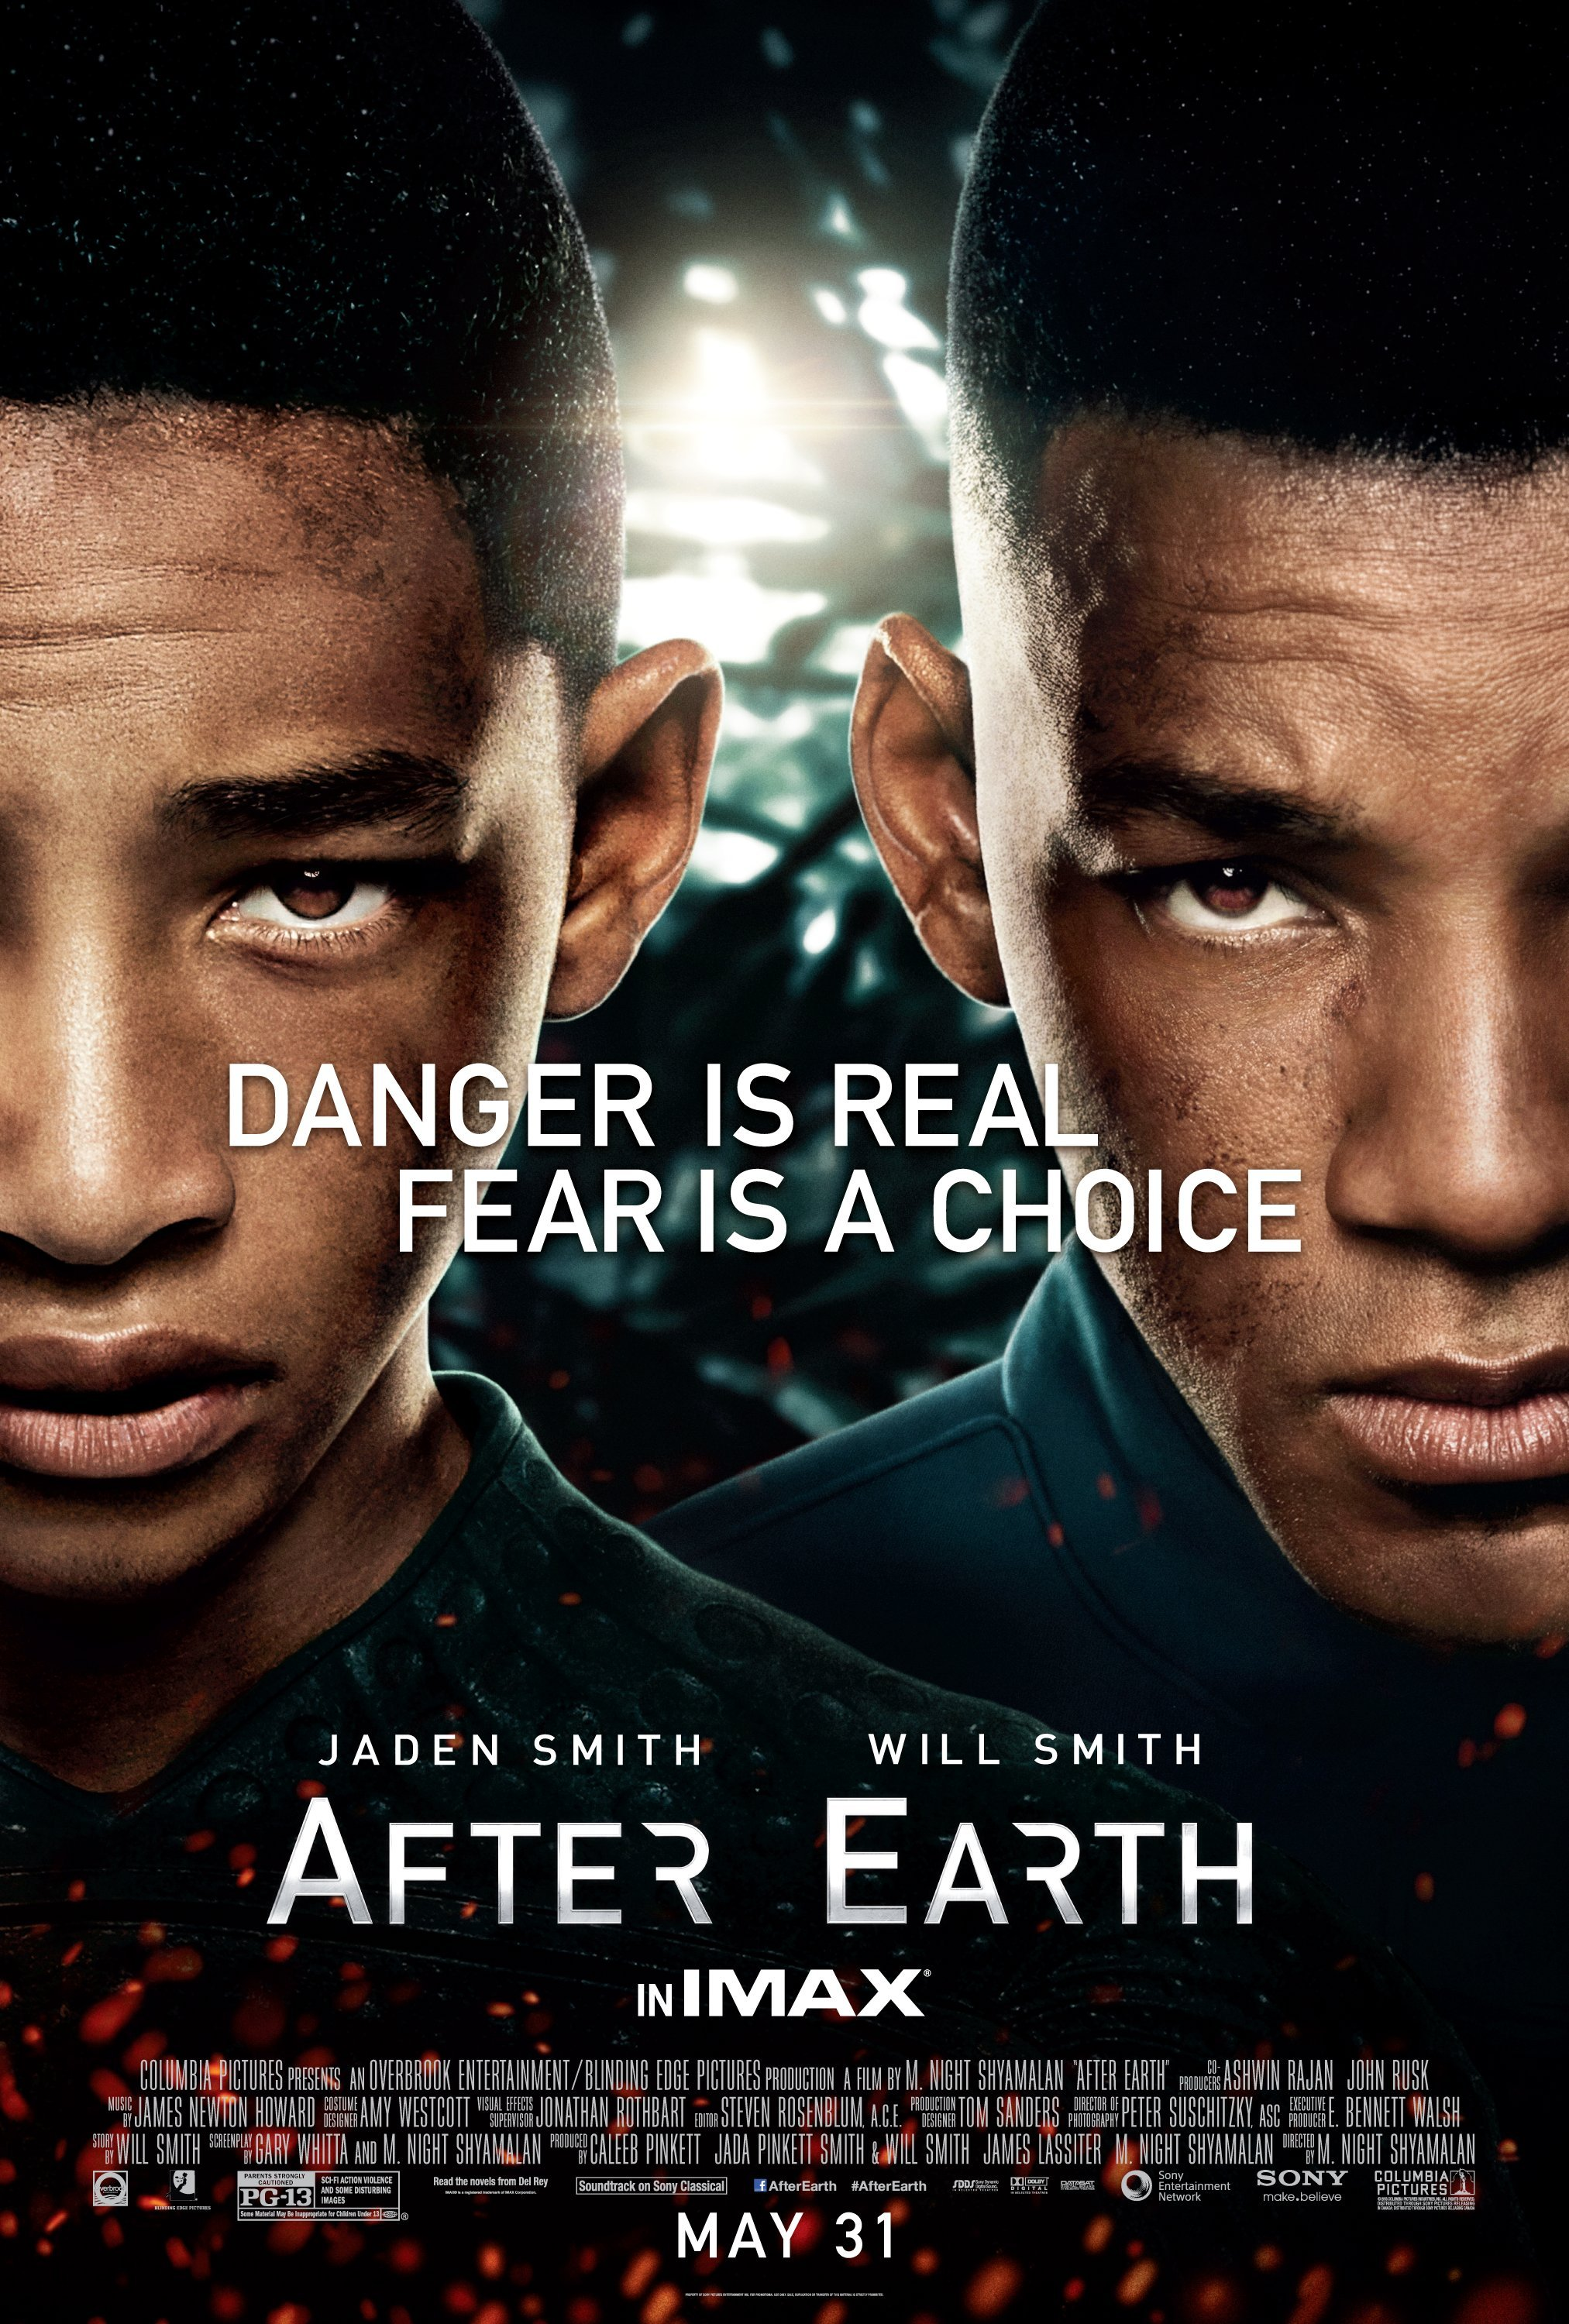 after earth danger is real fear is a choice will smith jaden smith